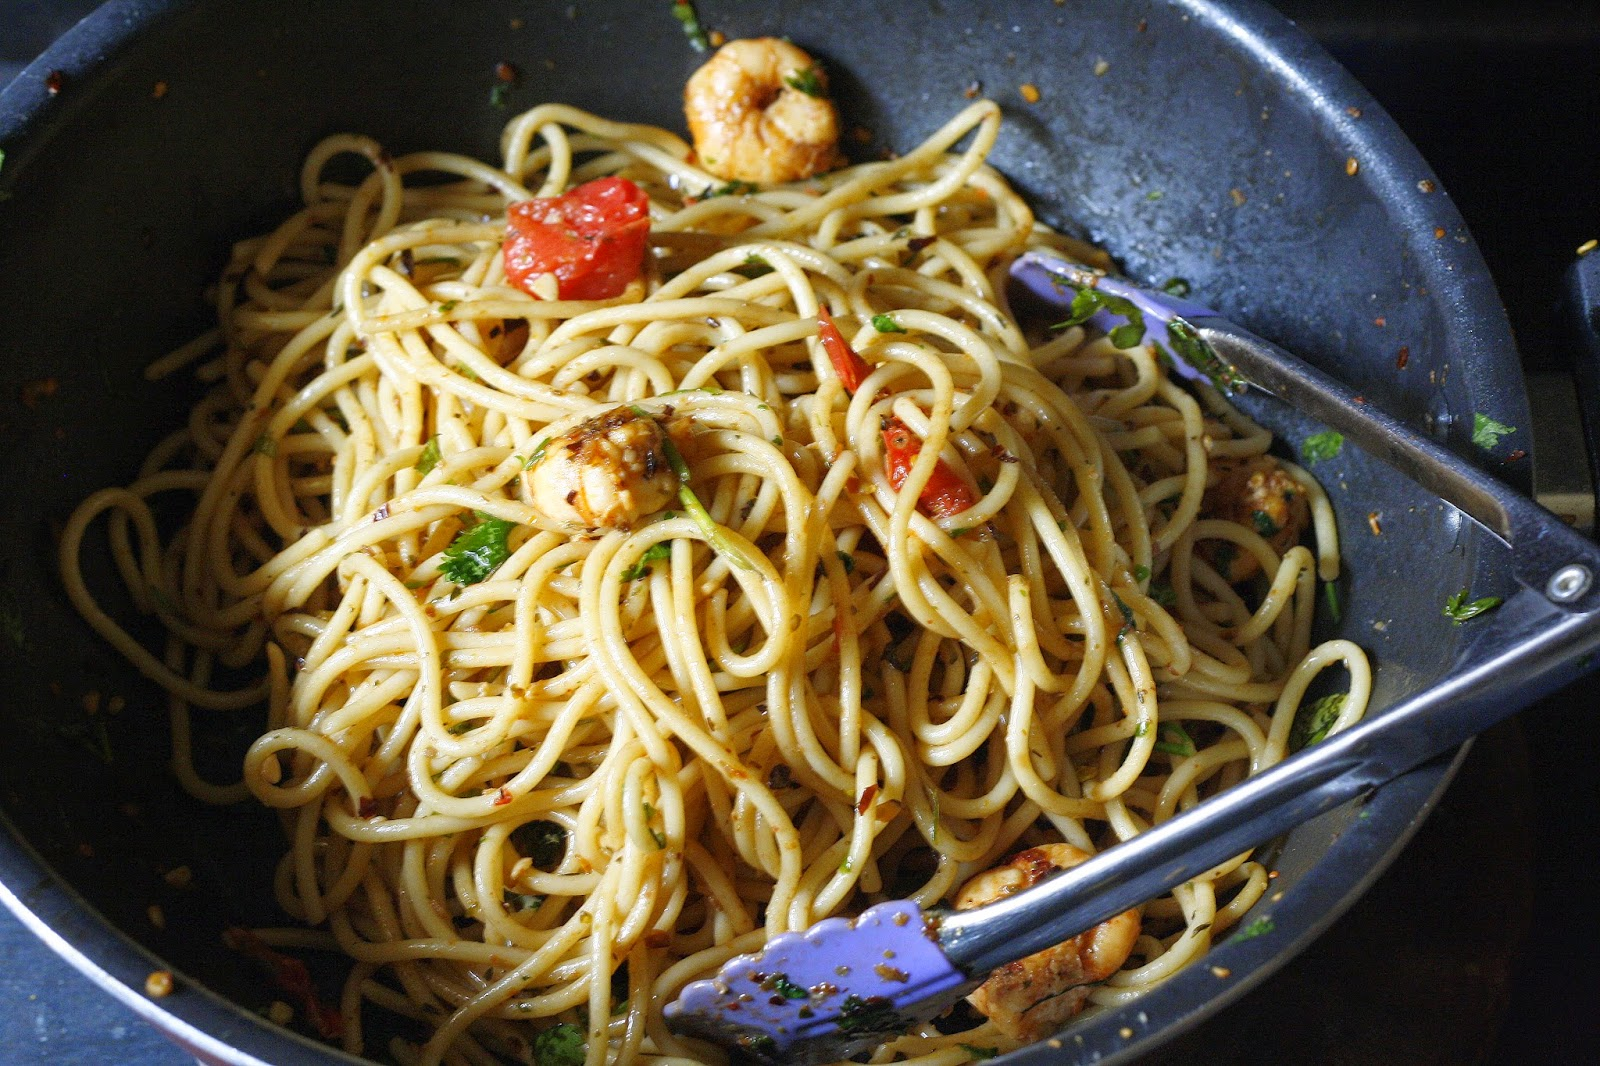 easy 20 min dinner ready, pasta or spaghetti made with garlic, olive oil and shrimps